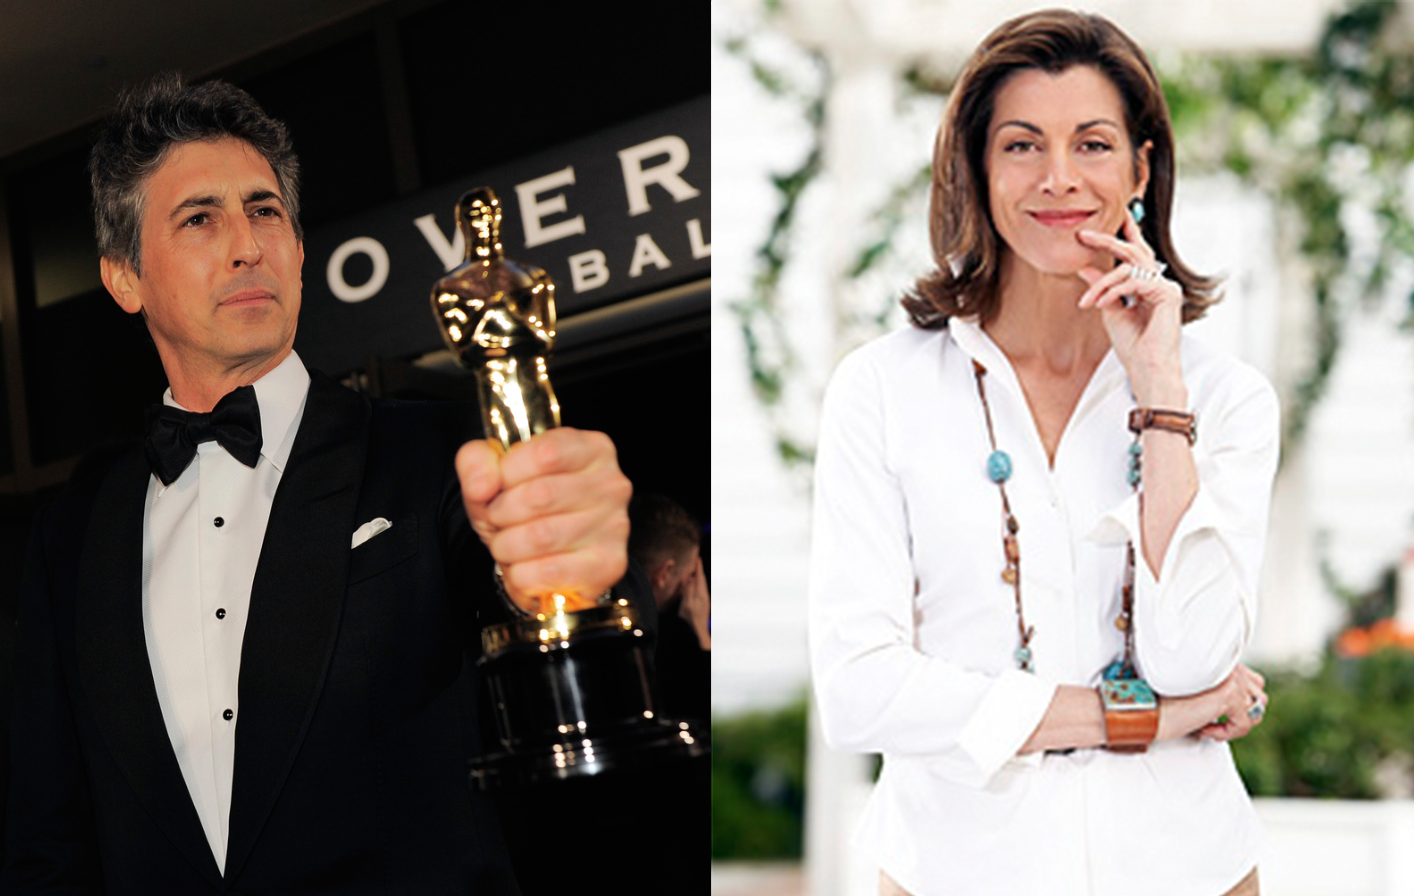 From 4:00pm - 4:30pm,    two-time Academy Award winning film director, producer, screenwriter, and Topanga local,   Alexander Payne   joins a  ctress & voiceover superstar,   Wendie Malick   for an intimate fireside chat on Payne's prolific and impactful career.